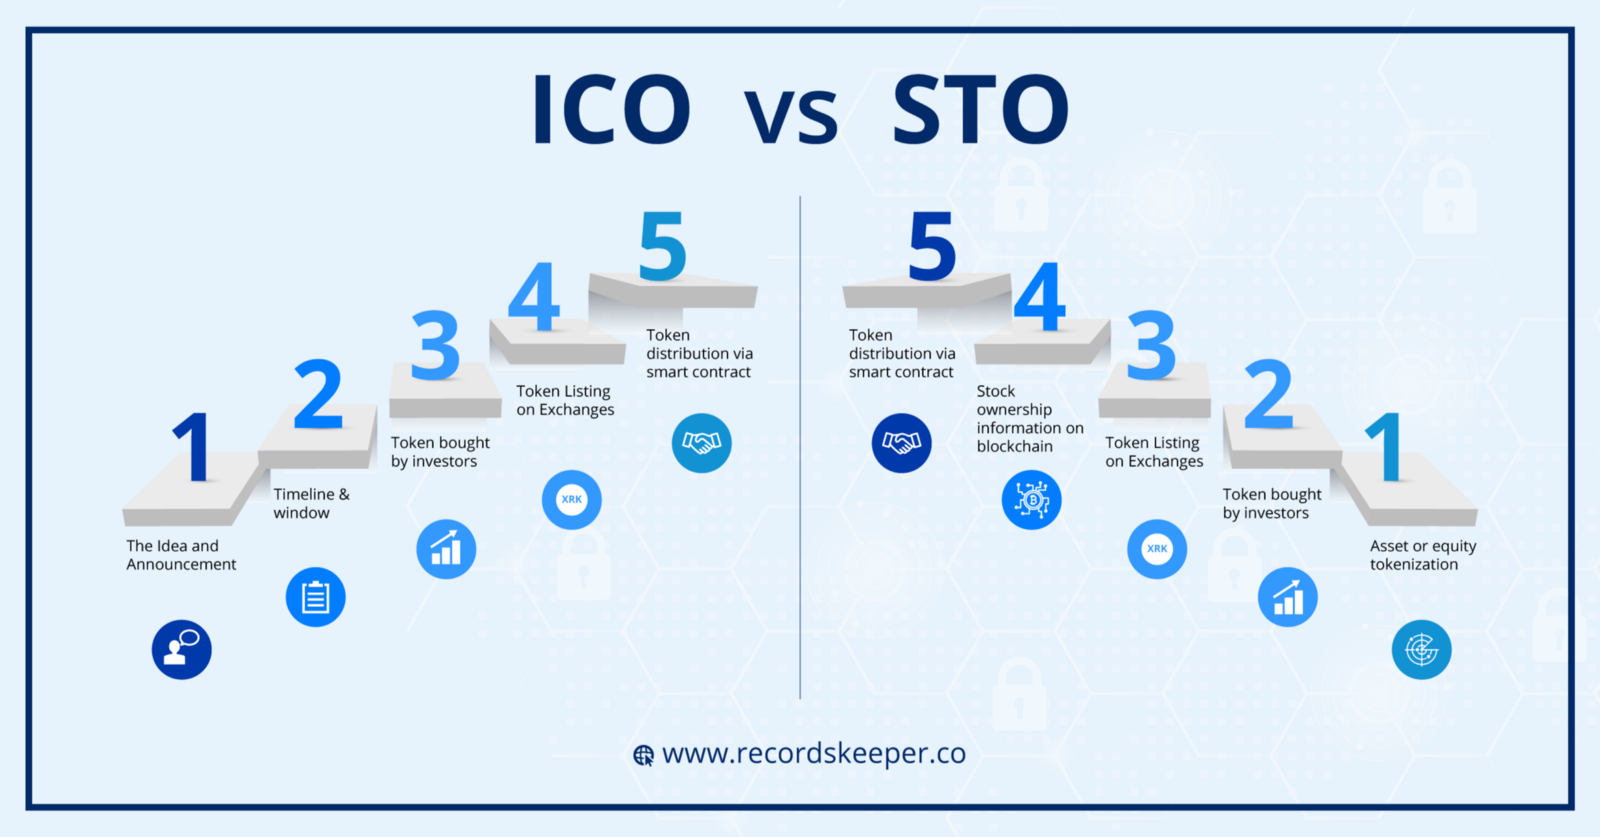 What is the different cryptocurrencies and ico